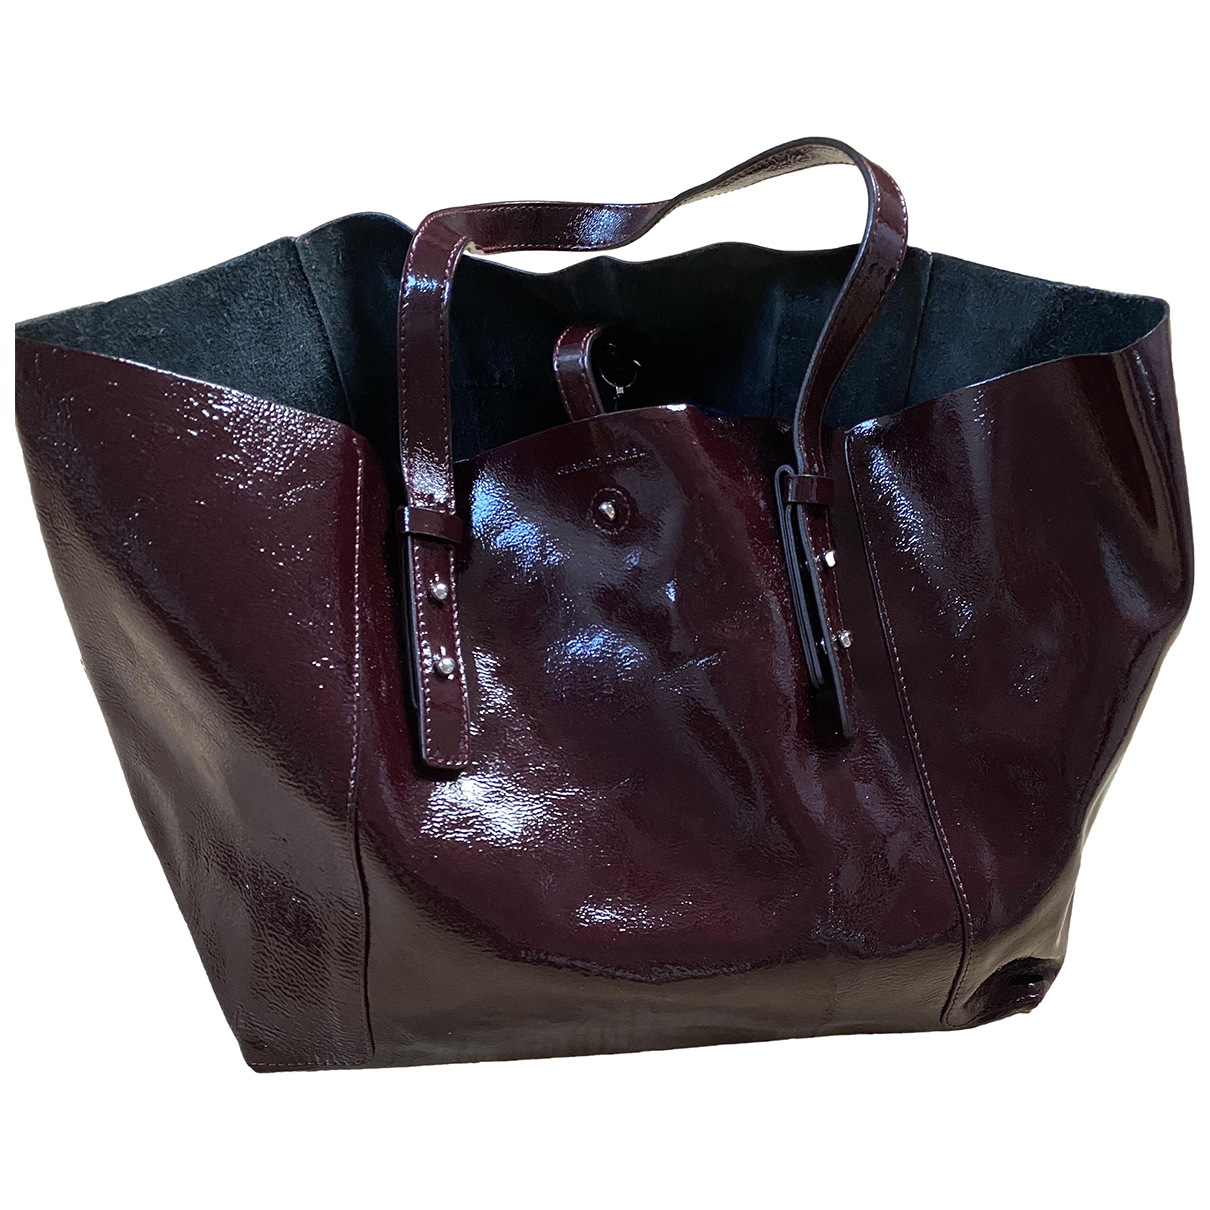 Gerard Darel Simple Bag Burgundy Patent leather handbag for Women N